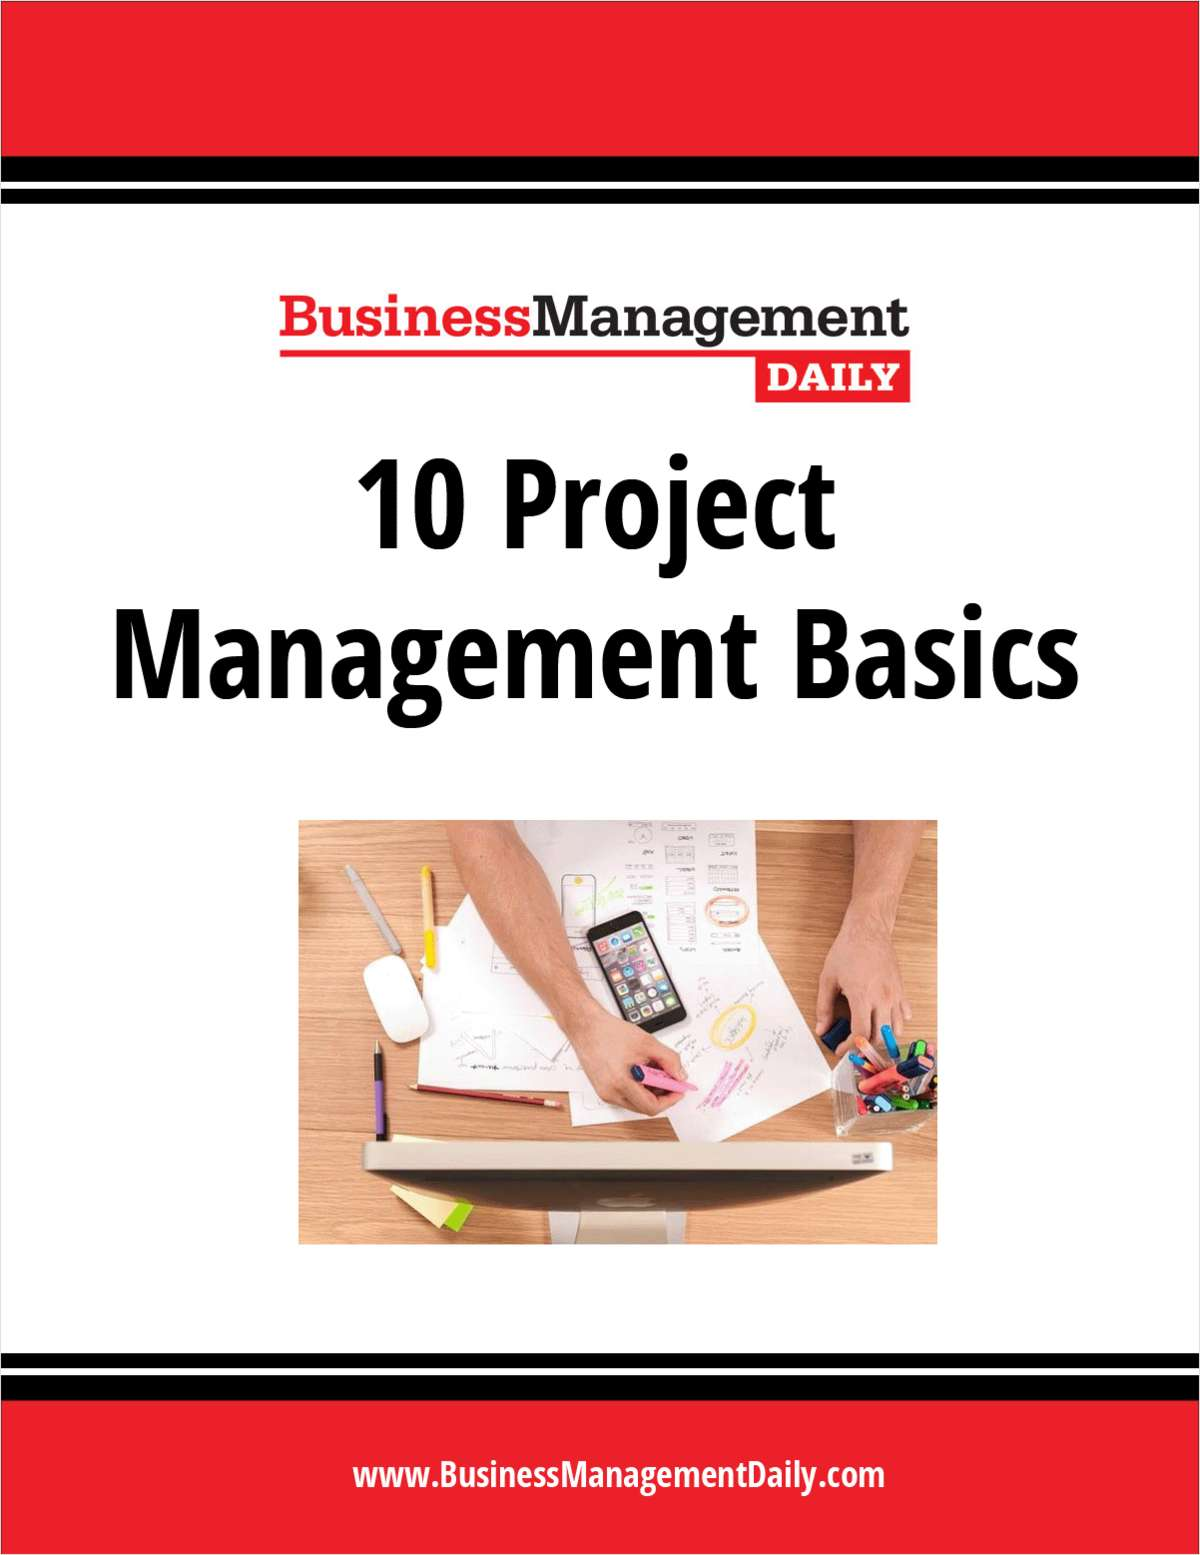 10 Project Management Basics